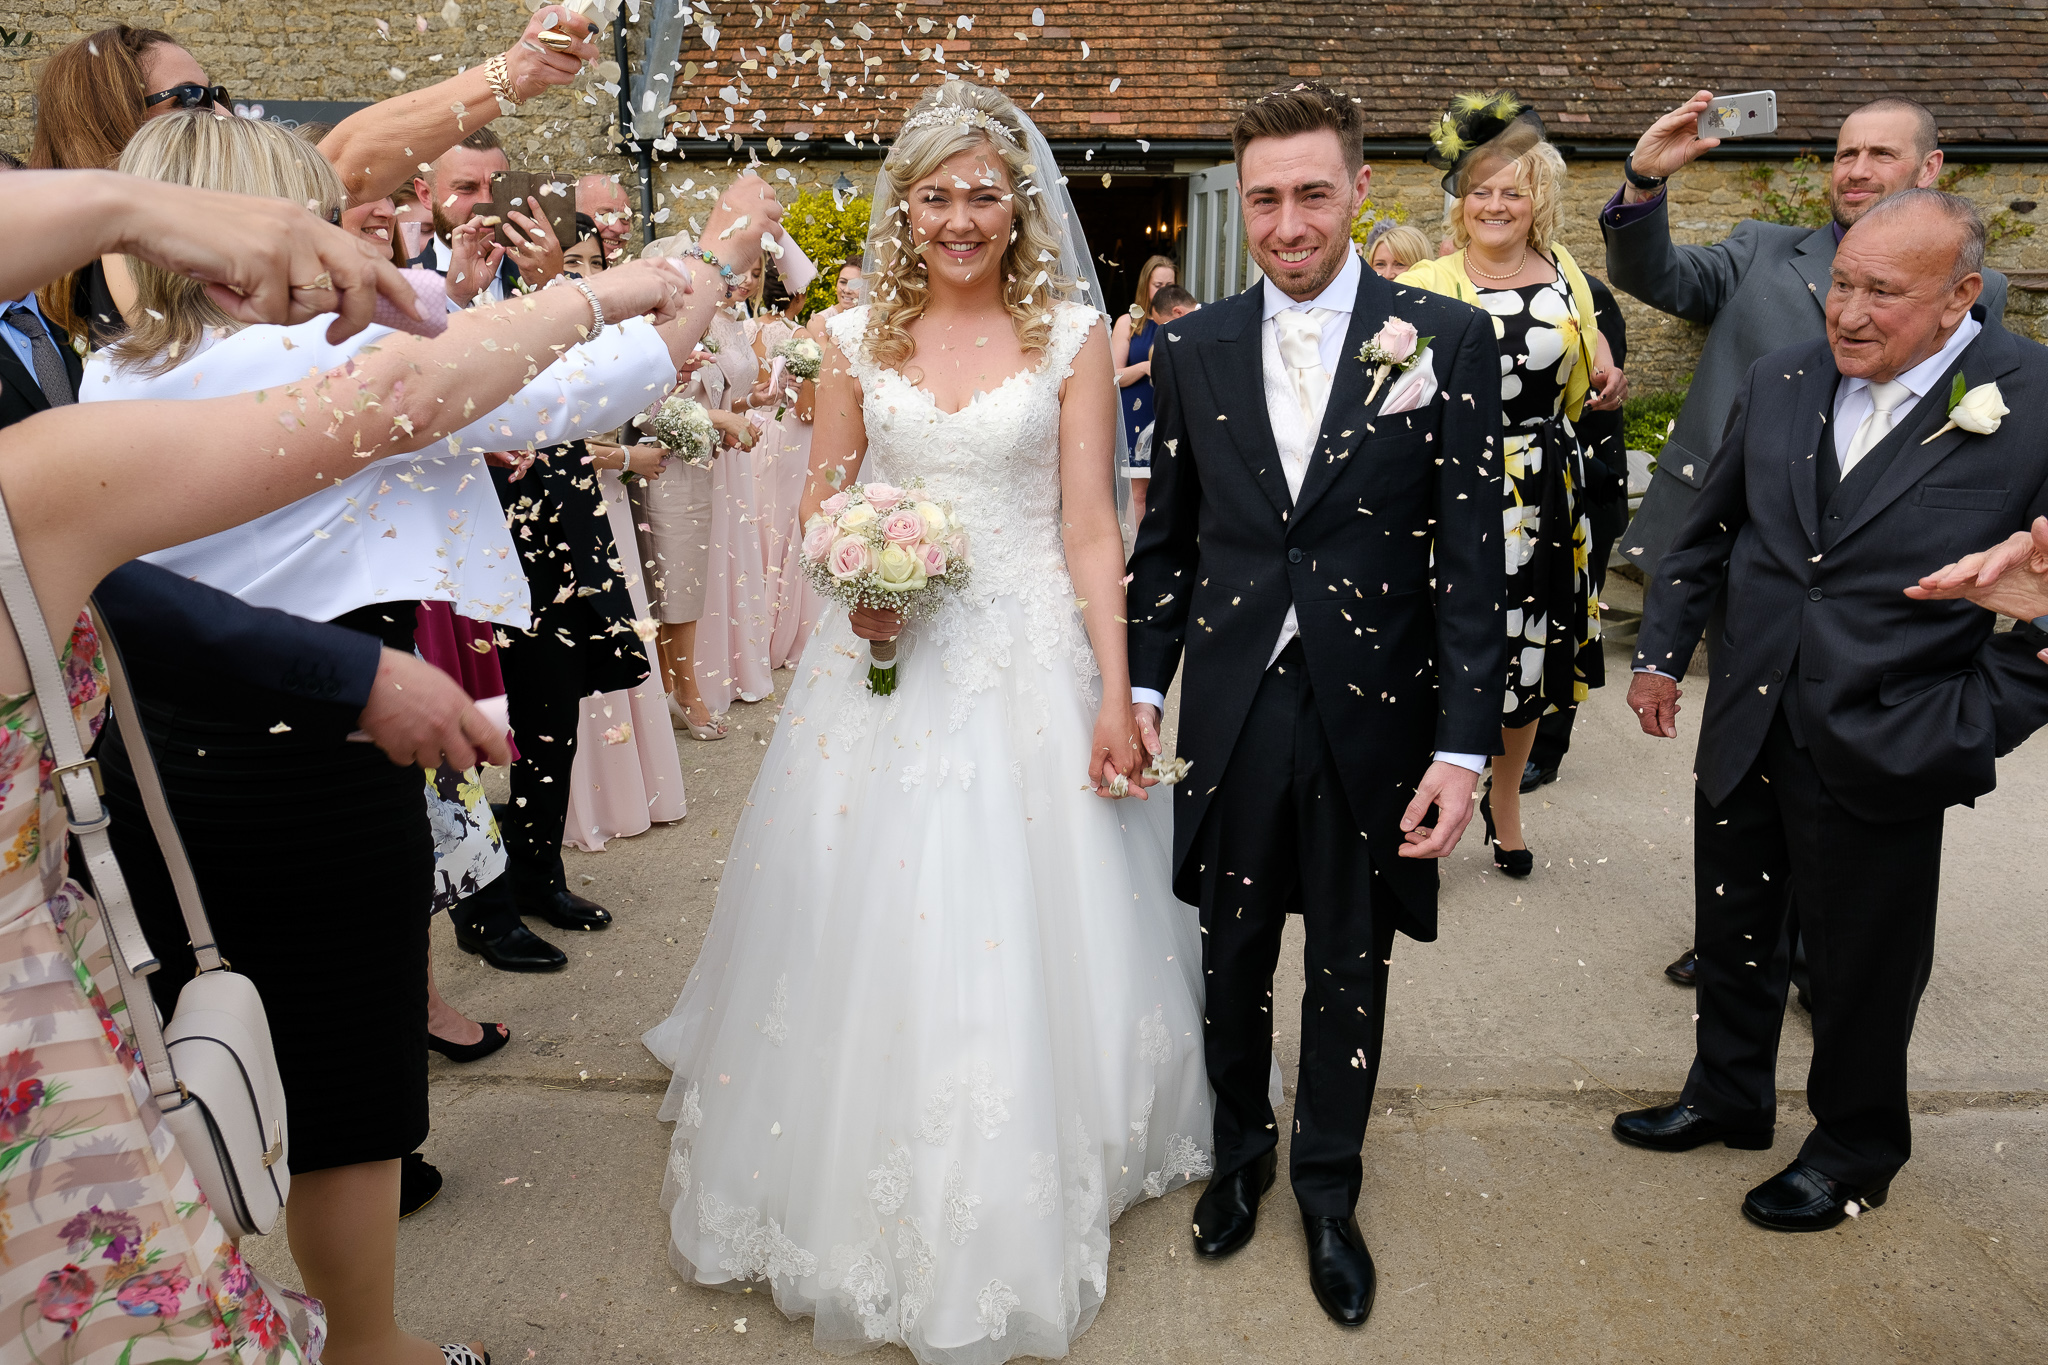 A bride and groom at a wedding at Stratton Court Barn, Bicester, Oxfordshire.